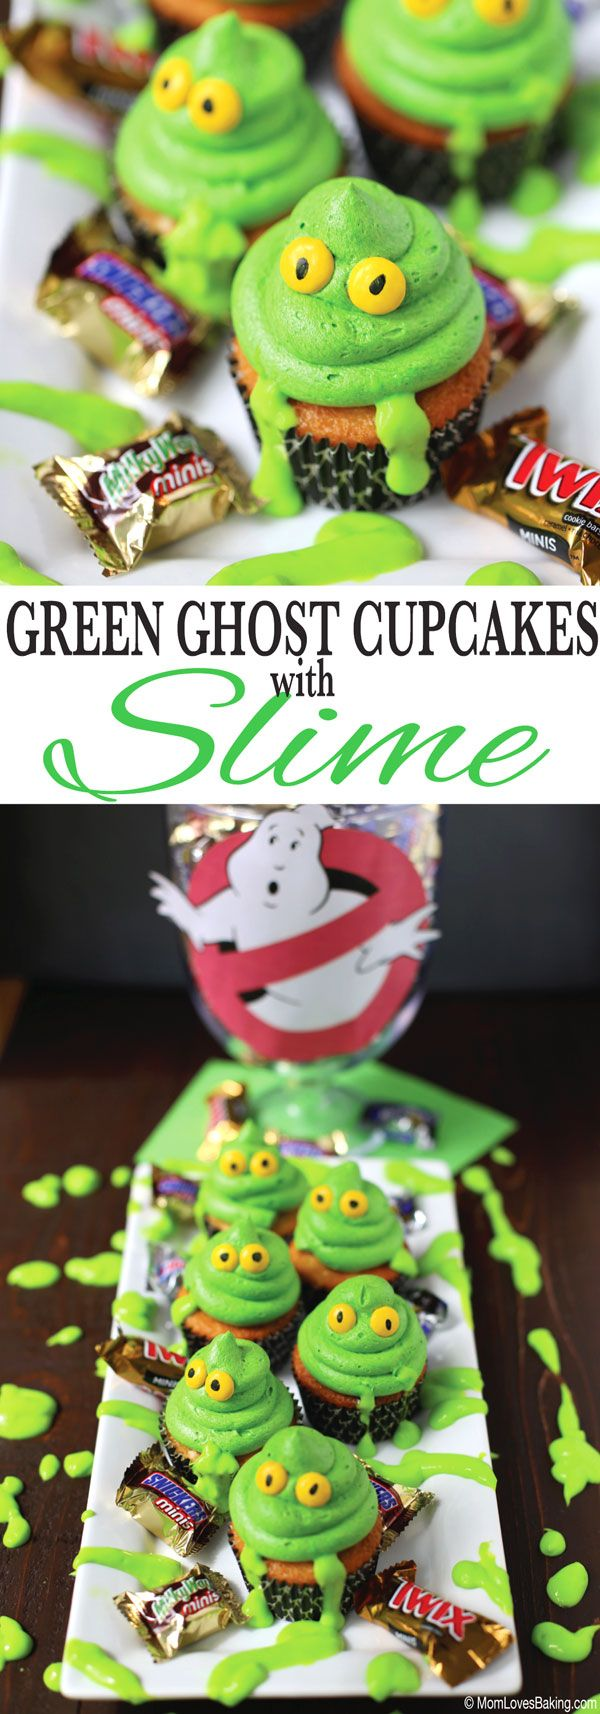 Ghostbusters is in theaters now! How about some Green Ghost Cupcakes with Slime! #BTSSpirit #ad @walmart